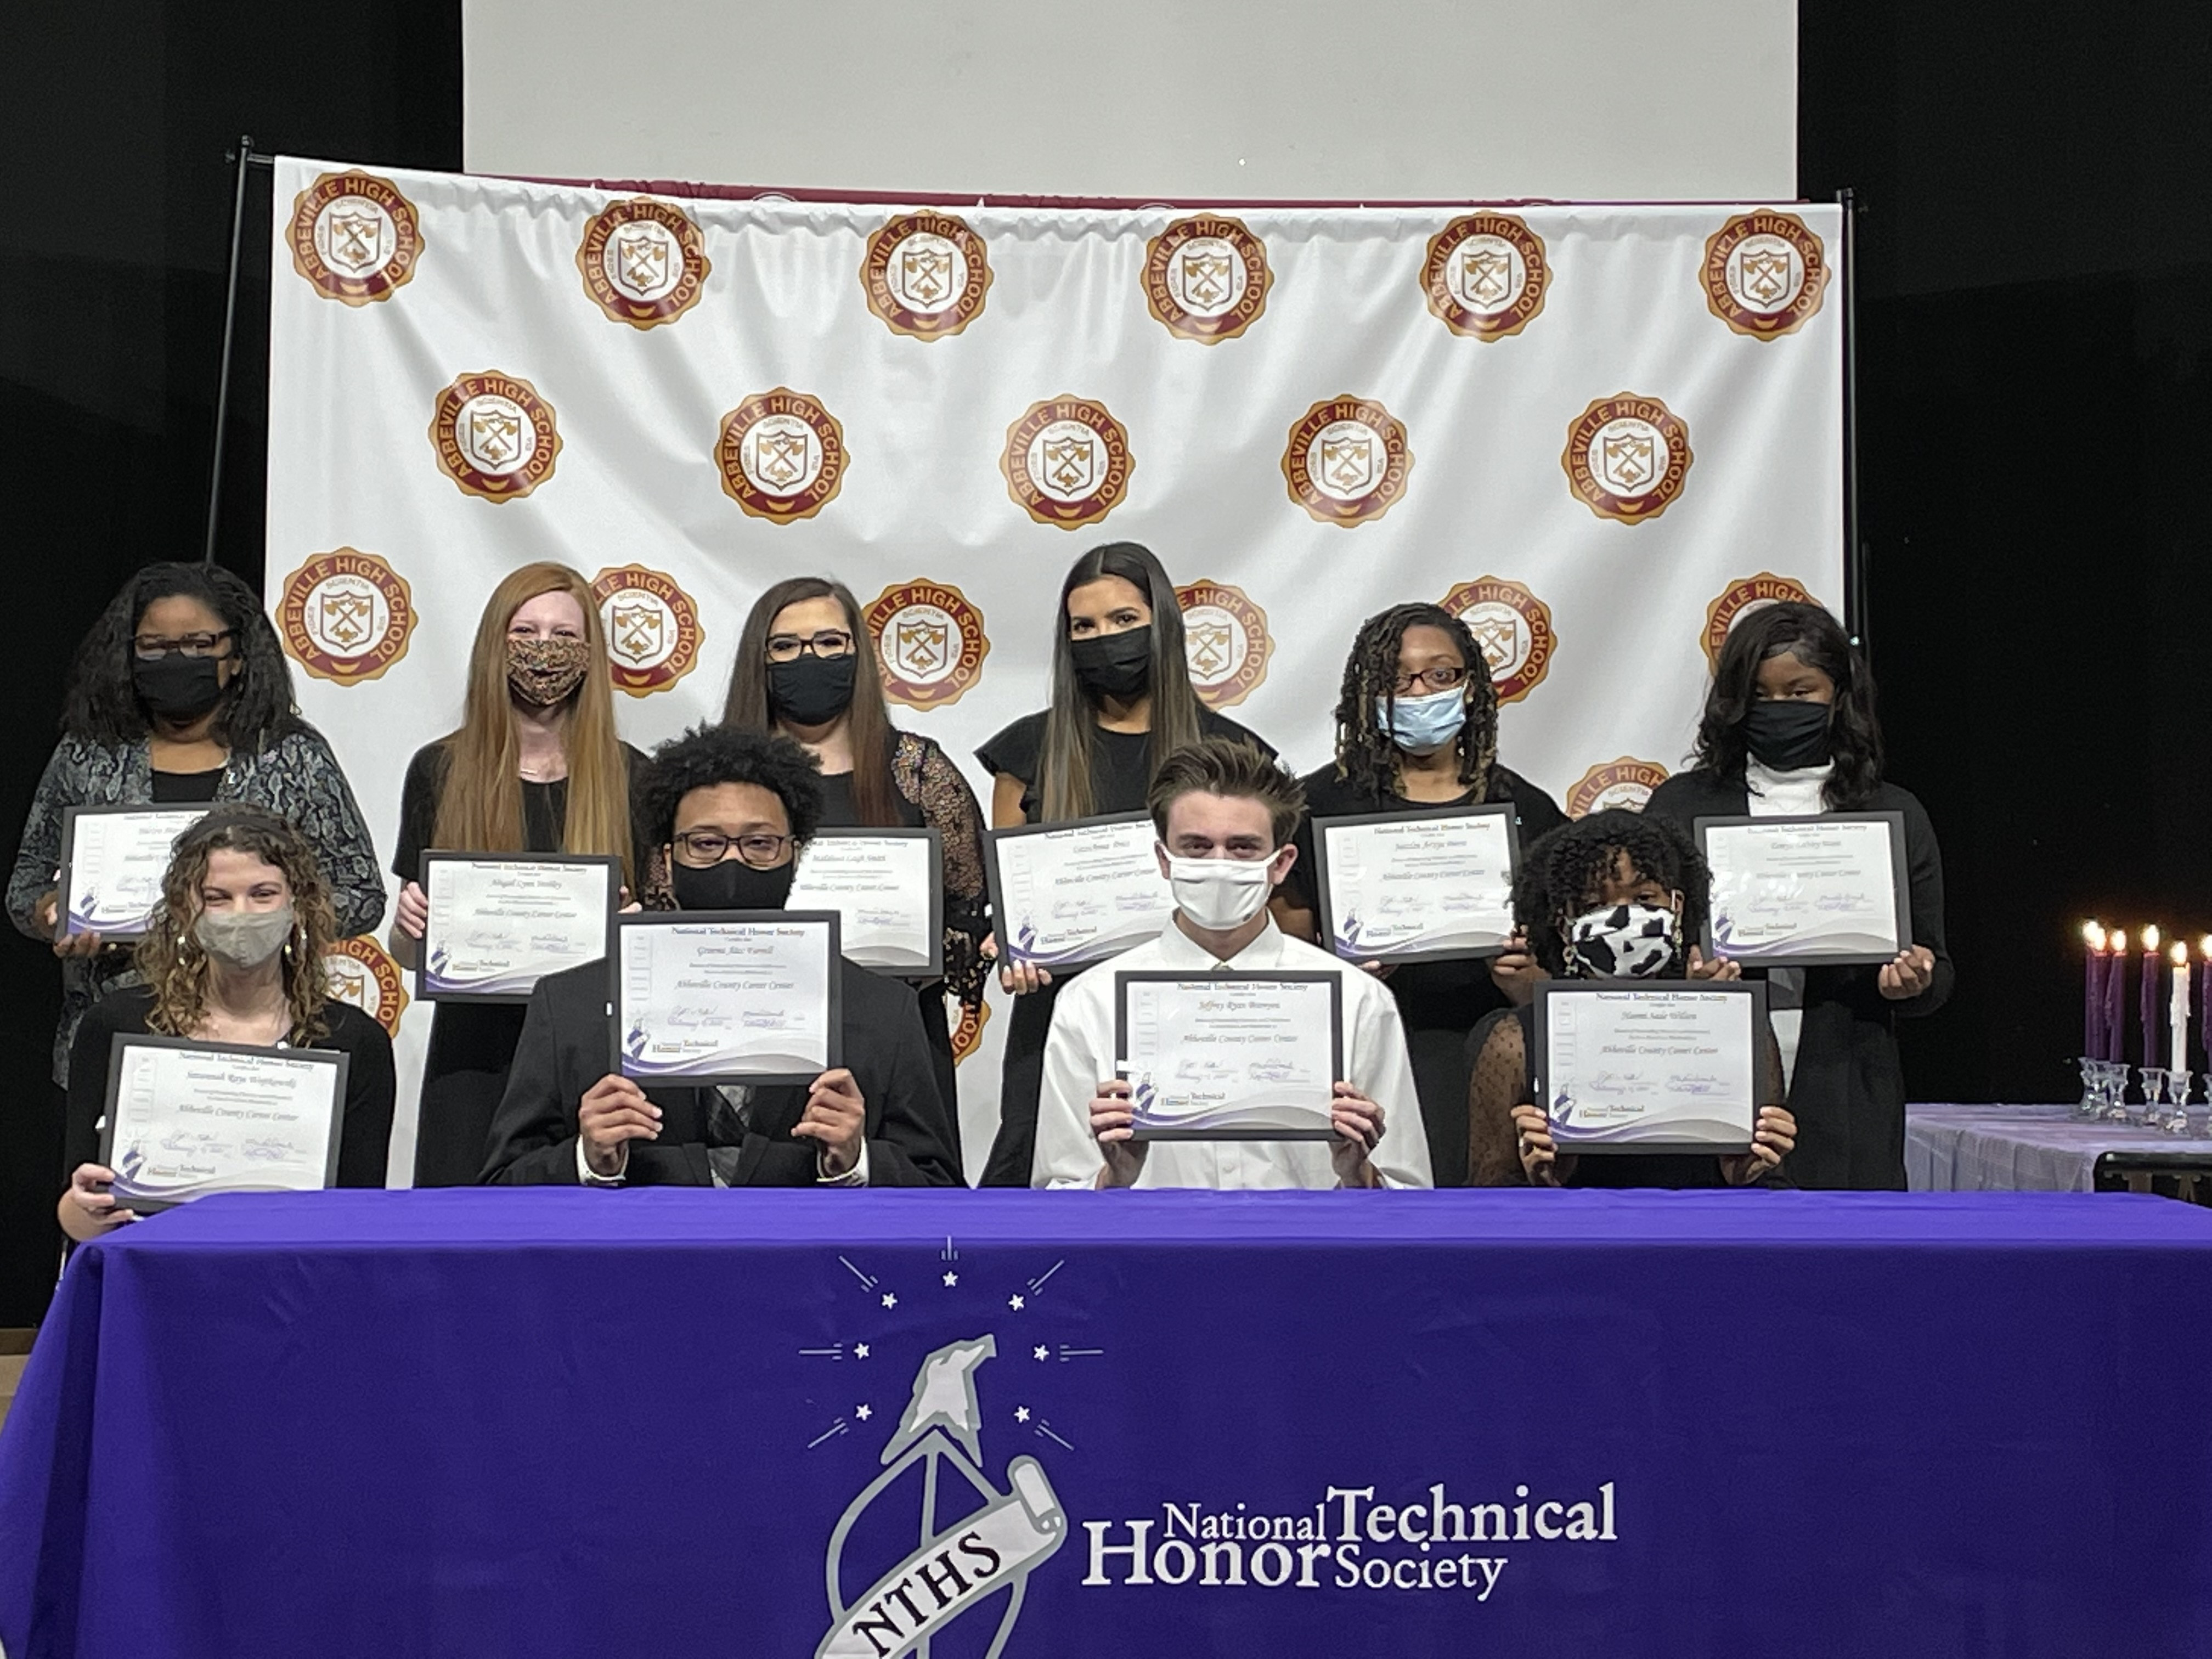 Students pose for camera wearing masks and holding plaques.